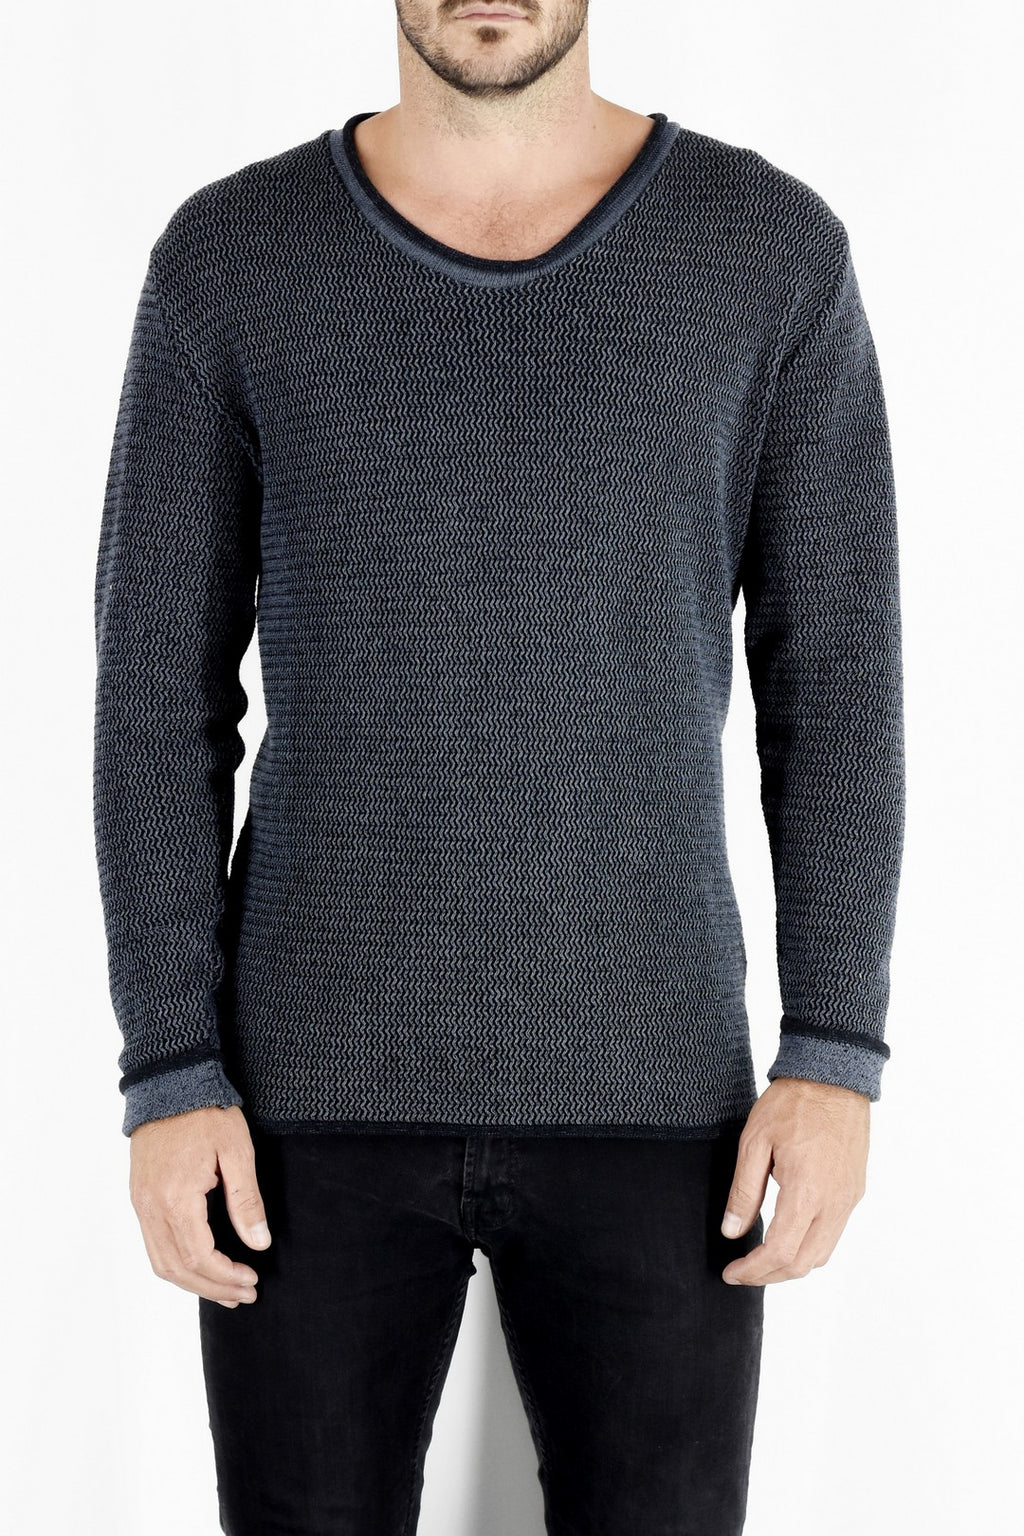 ZG5158 GREY MARL JERSEY WITH SIDE ZIPS